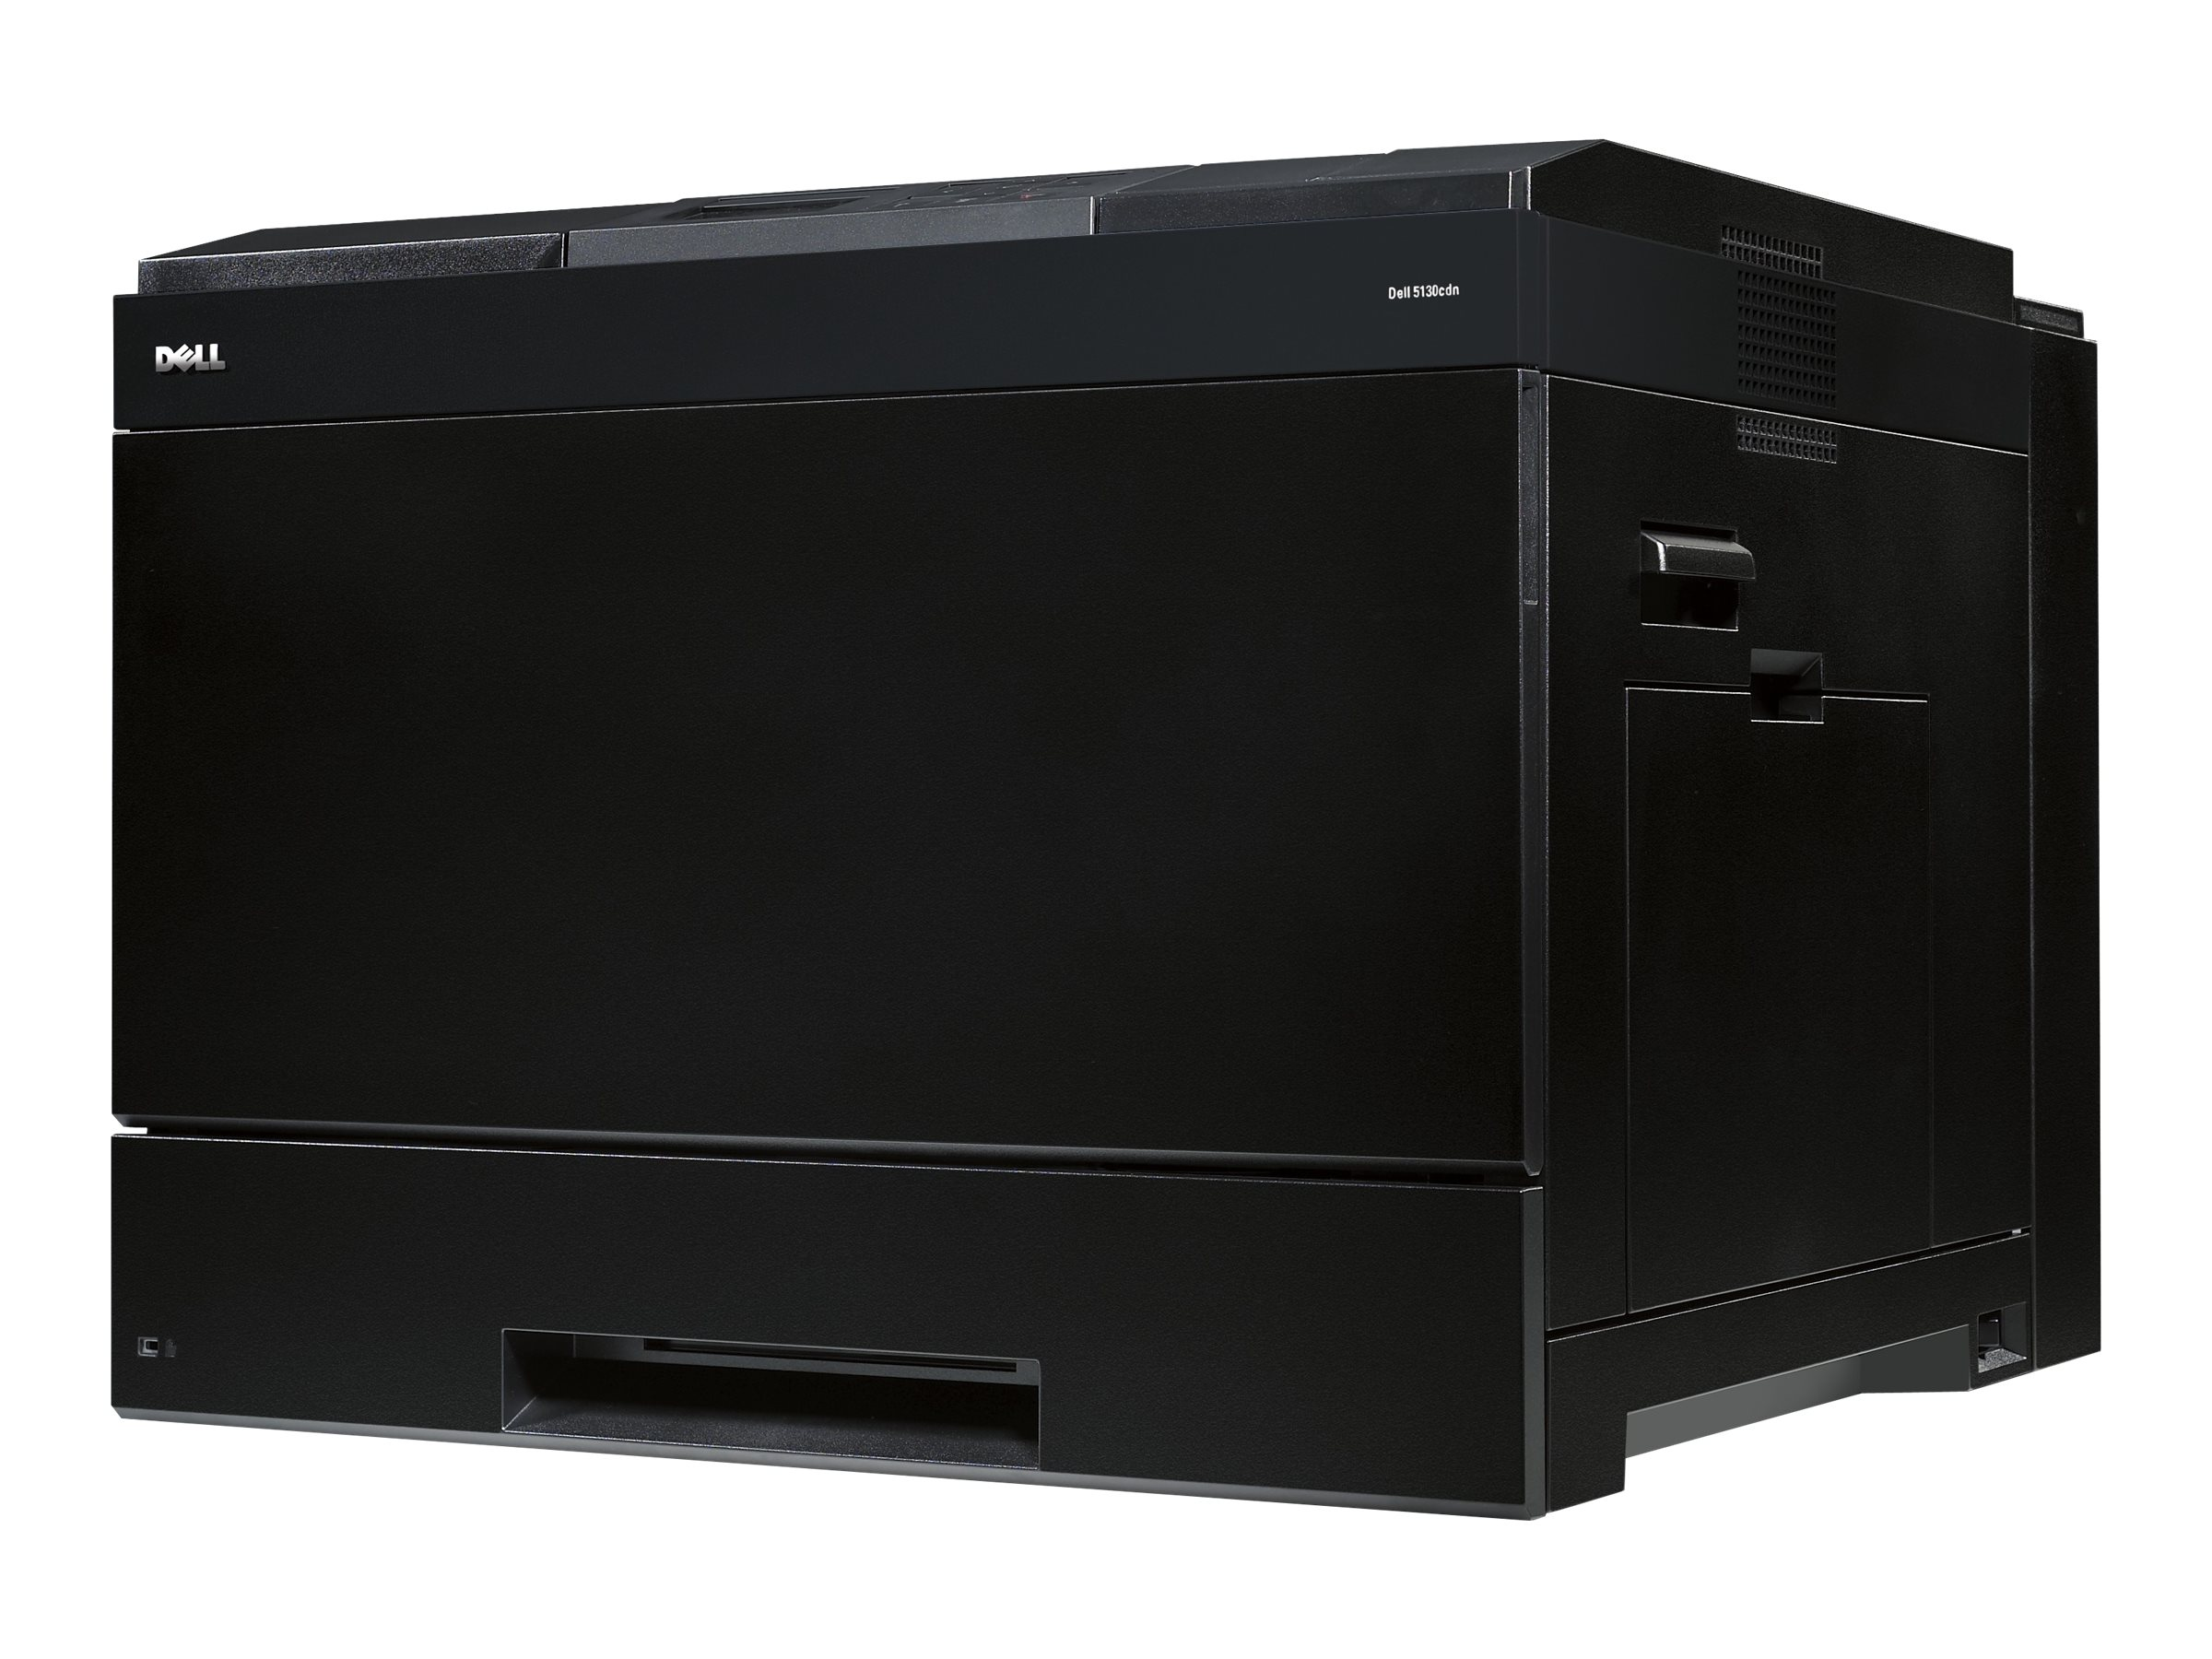 Dell 5130cdn Color Laser Printer, 5130CDN, 12468436, Printers - Laser & LED (color)